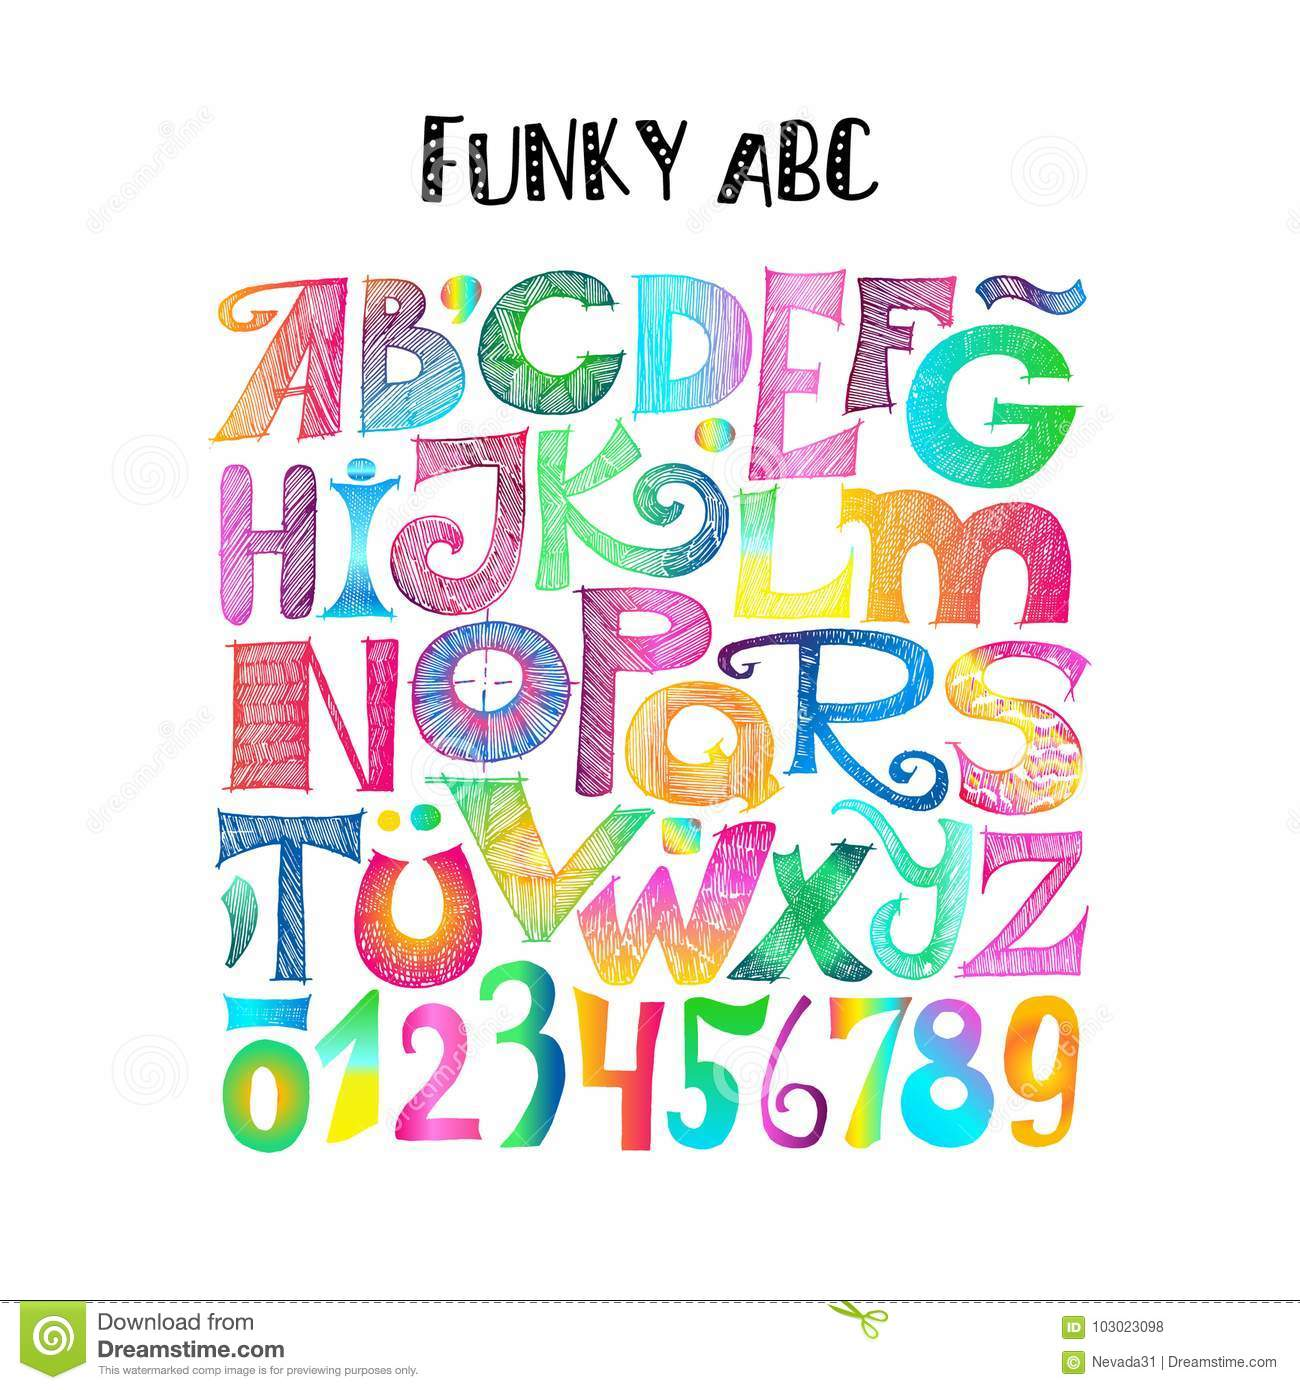 Download Funky ABC Sketchy Letters And Numerals Stock Vector